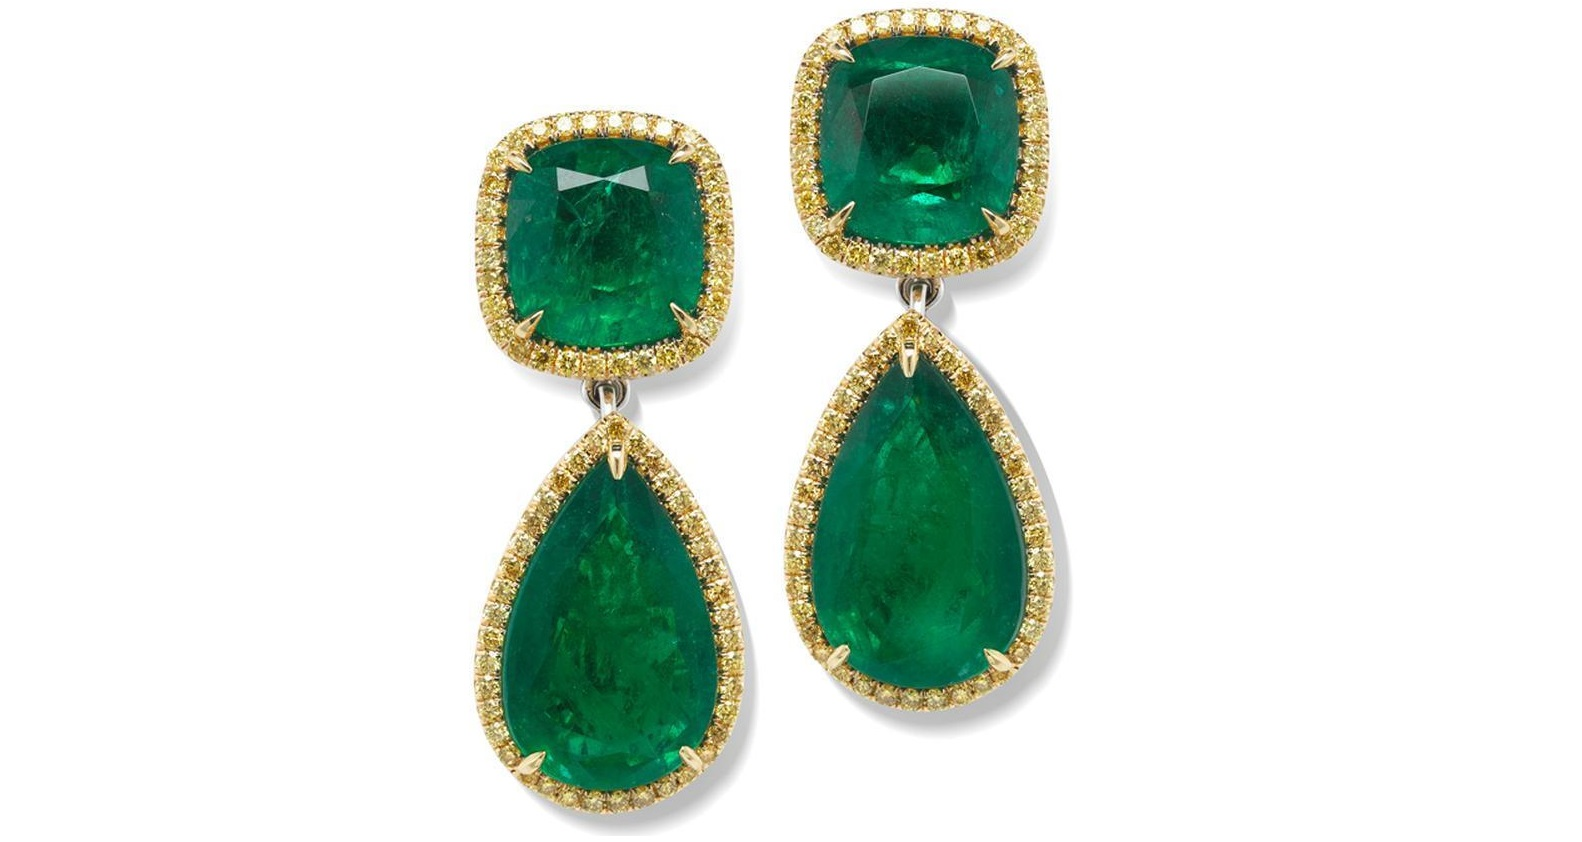 36.38ct Natural Emerald Fancy Yellow and White Diamond 18k gold earrings GIA